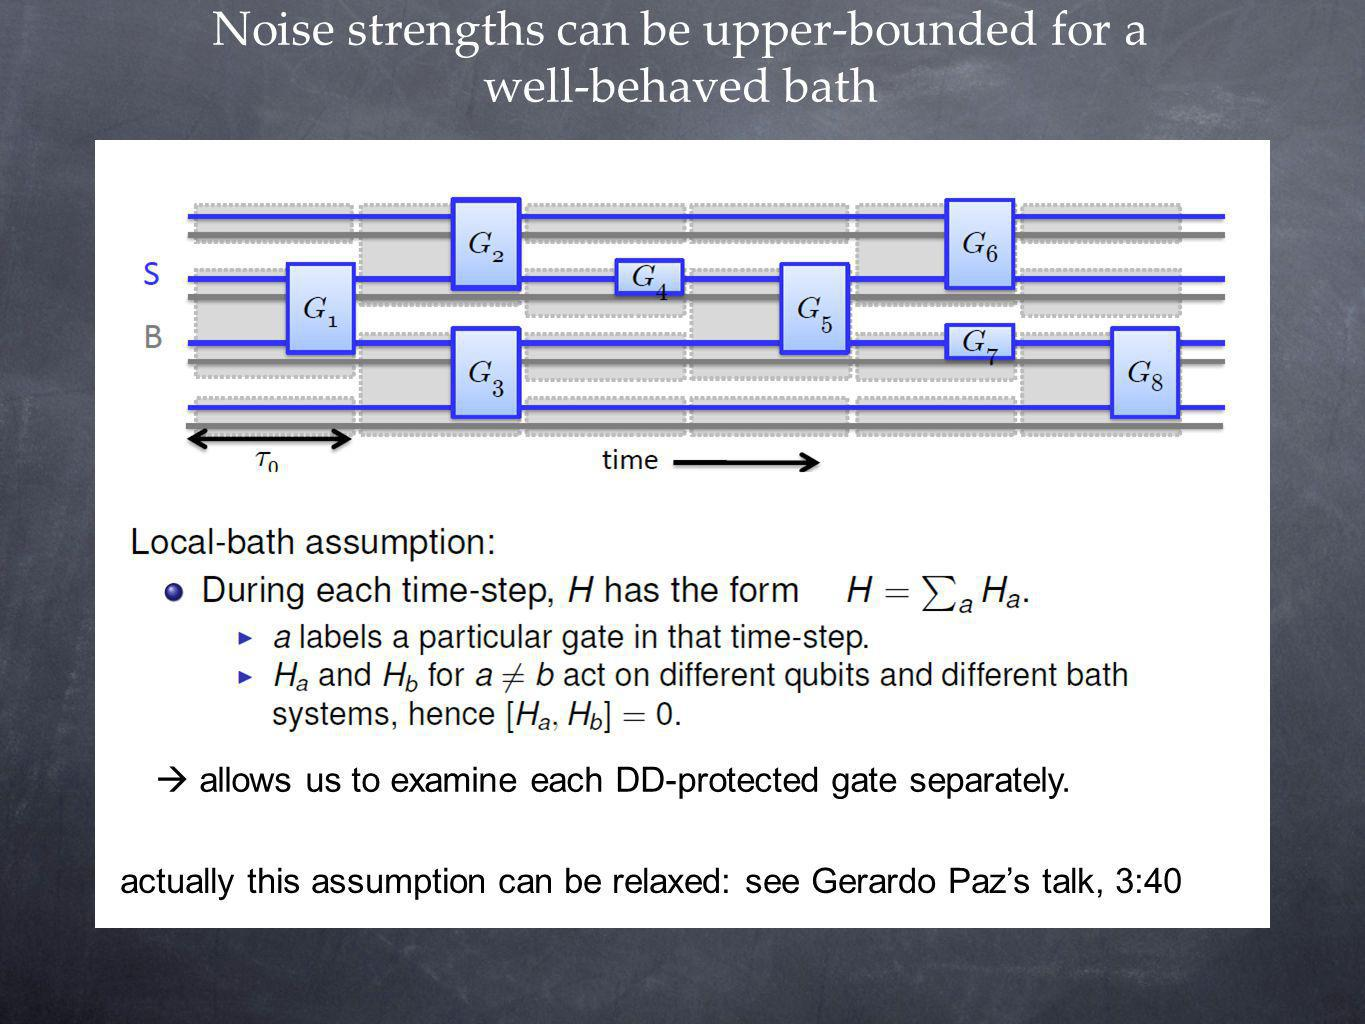 Noise strengths can be upper-bounded for a well-behaved bath